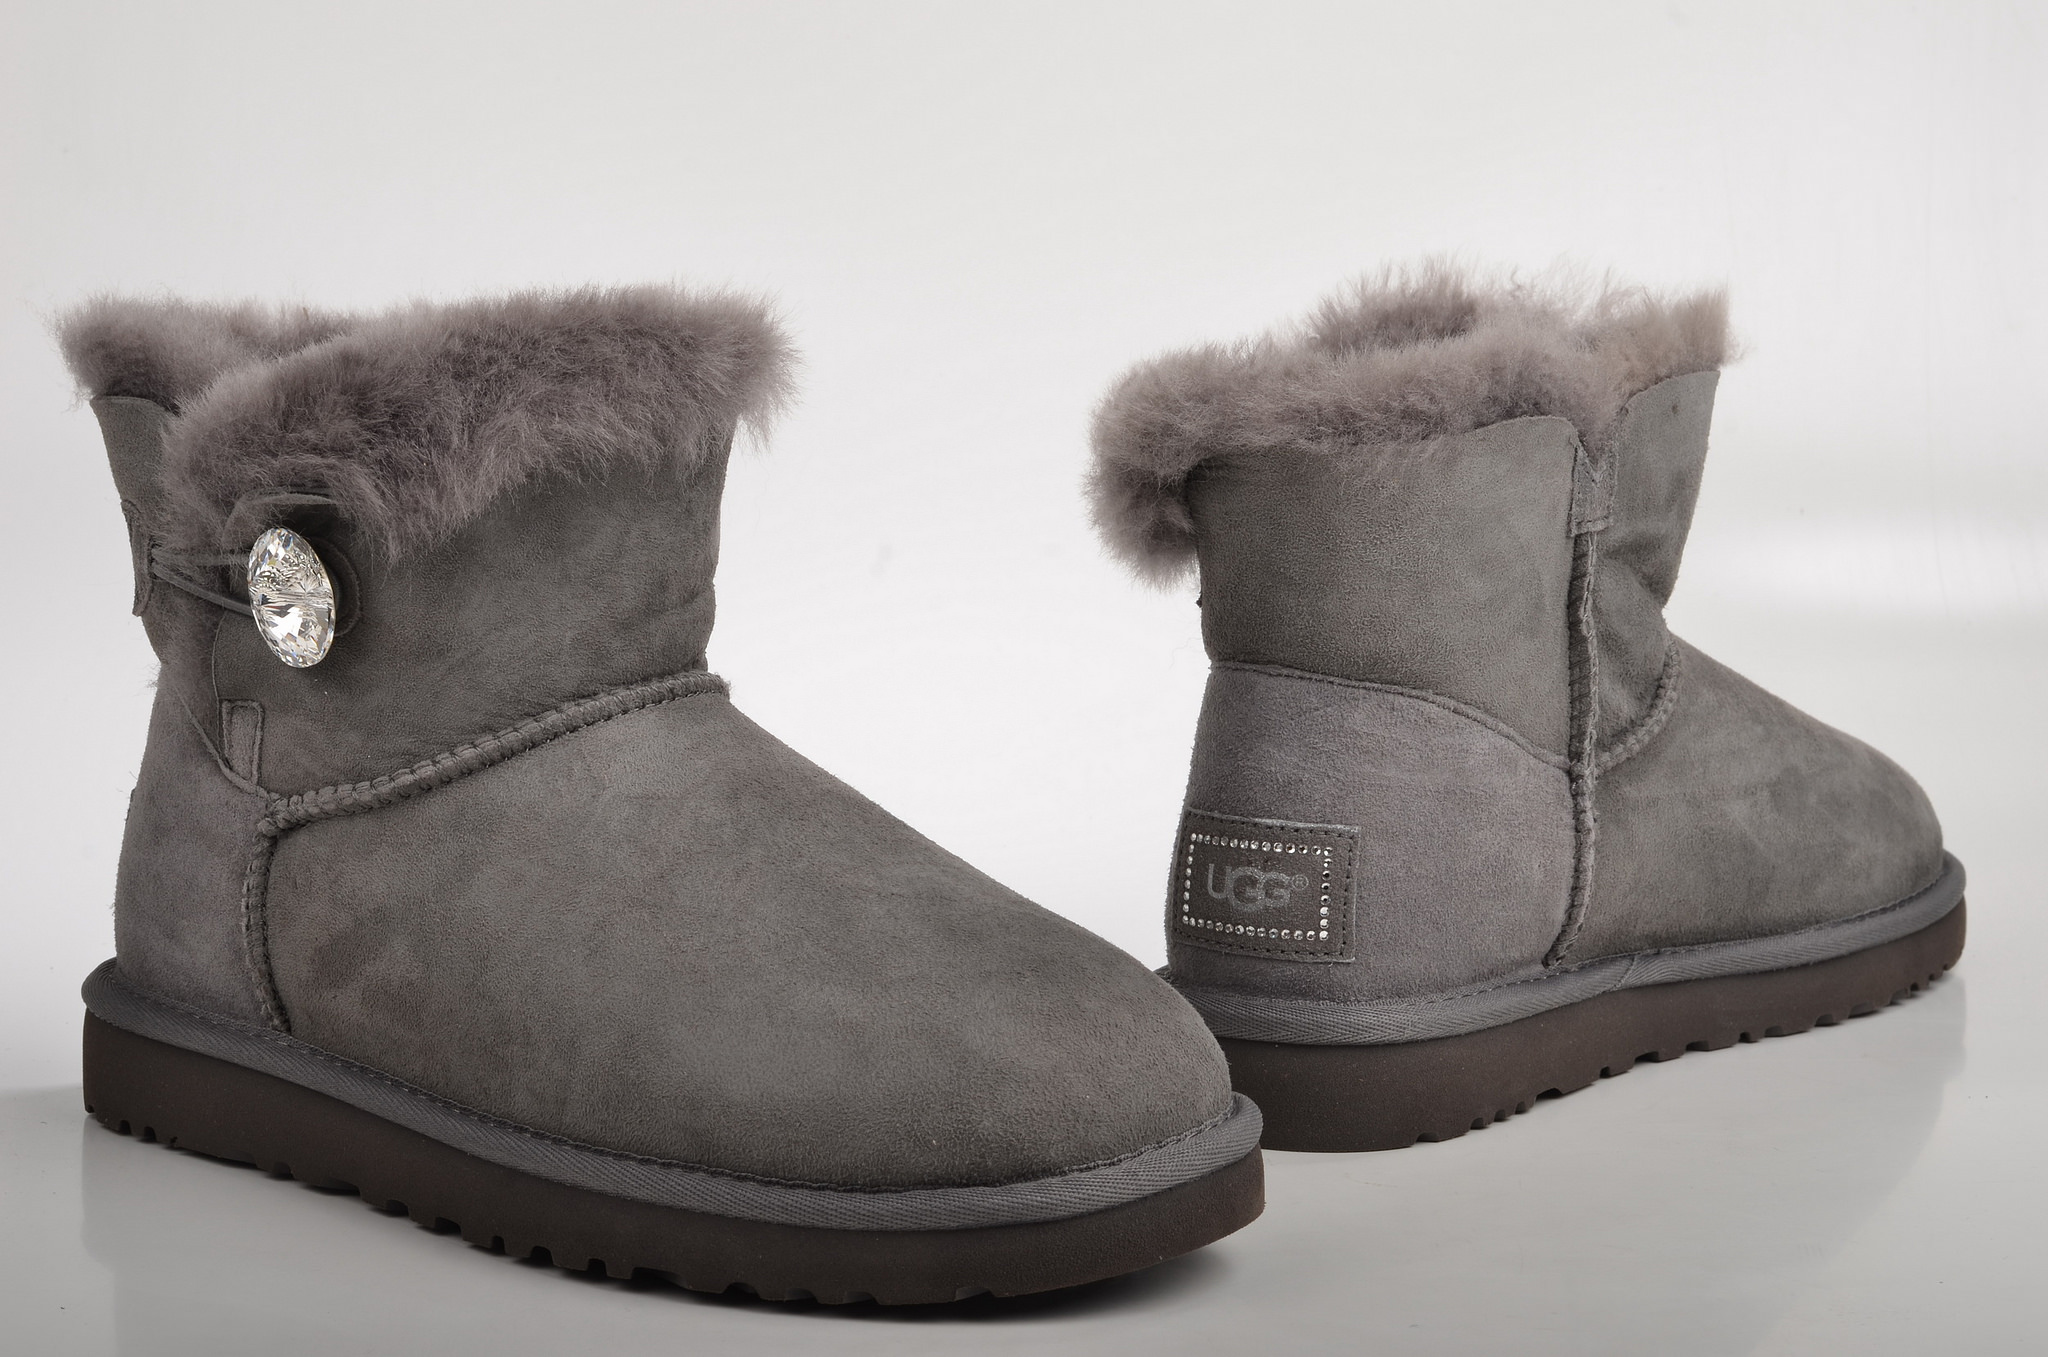 Celebrating One Of Australia S Biggest Exports The Ugg Boot